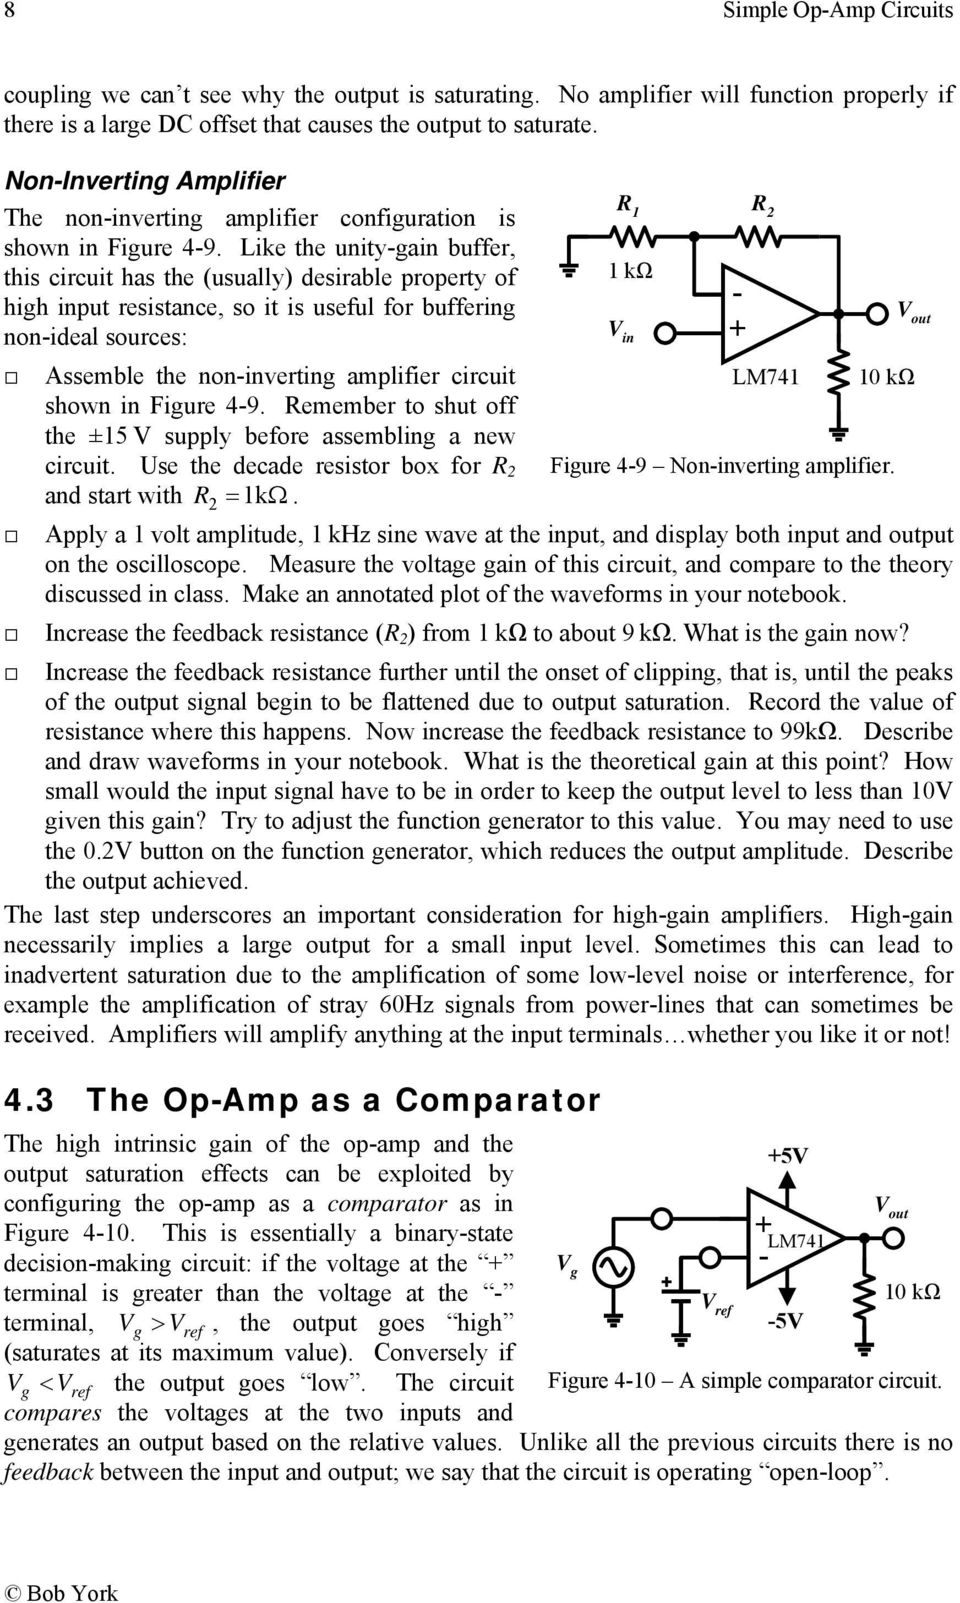 Simple Op Amp Circuits Pdf Headphone Amplifier Circuit This Is An Exercise In Like The Unitygain Buffer R 1 Has Usually Desirable 9 Opamp